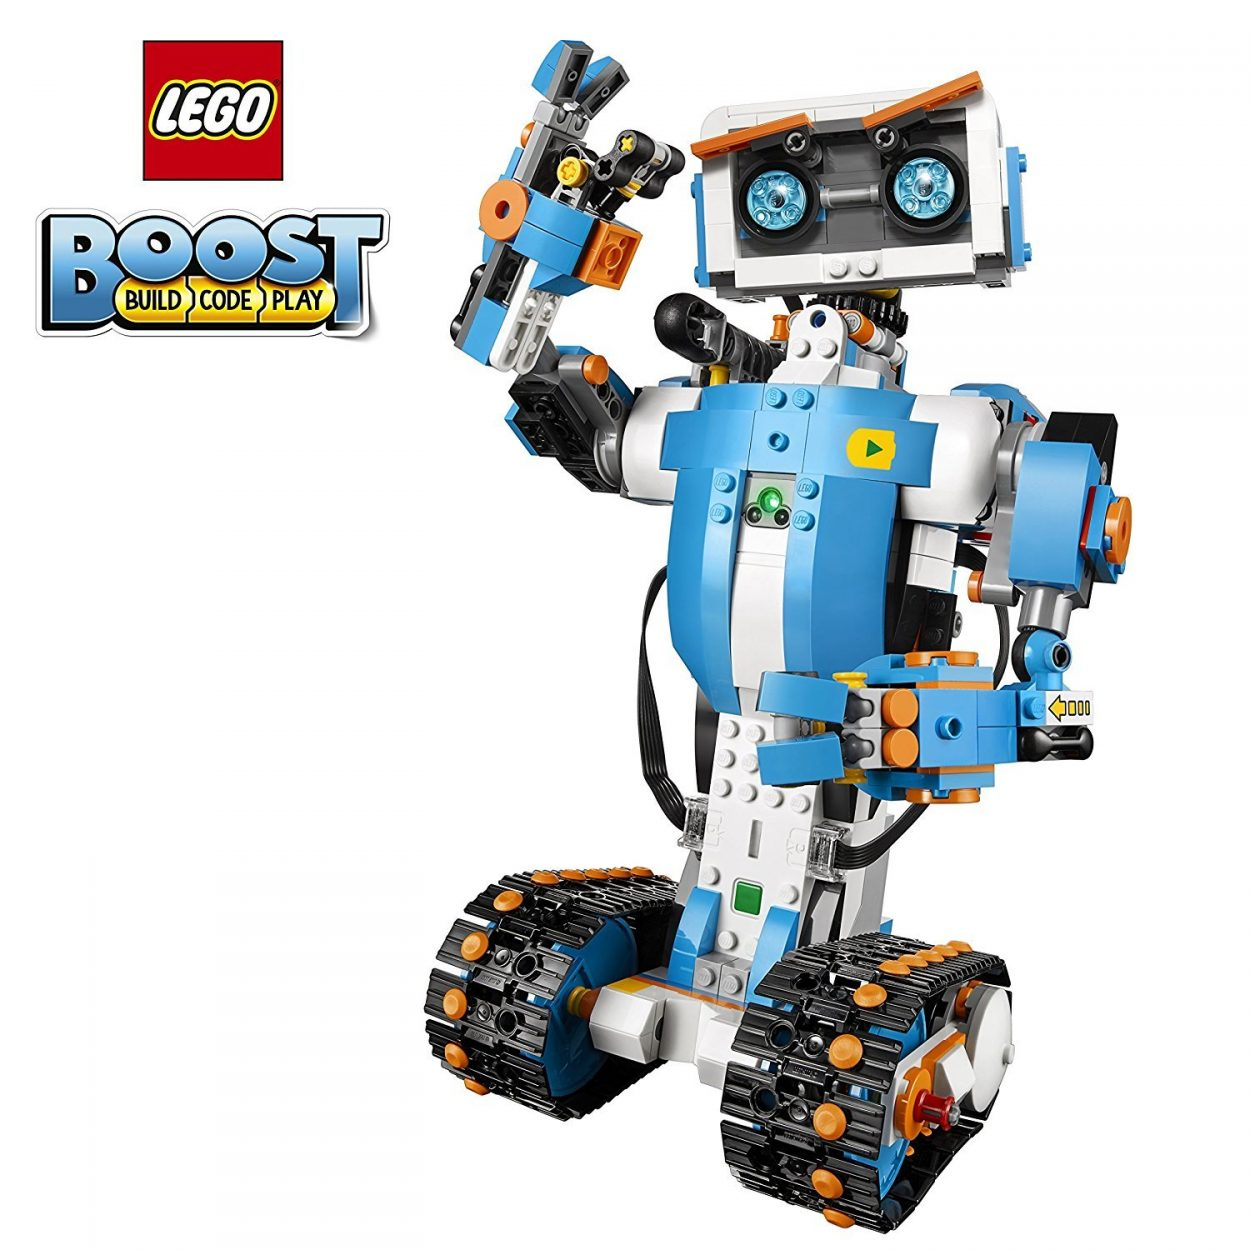 Lego Boost Robot Building Set